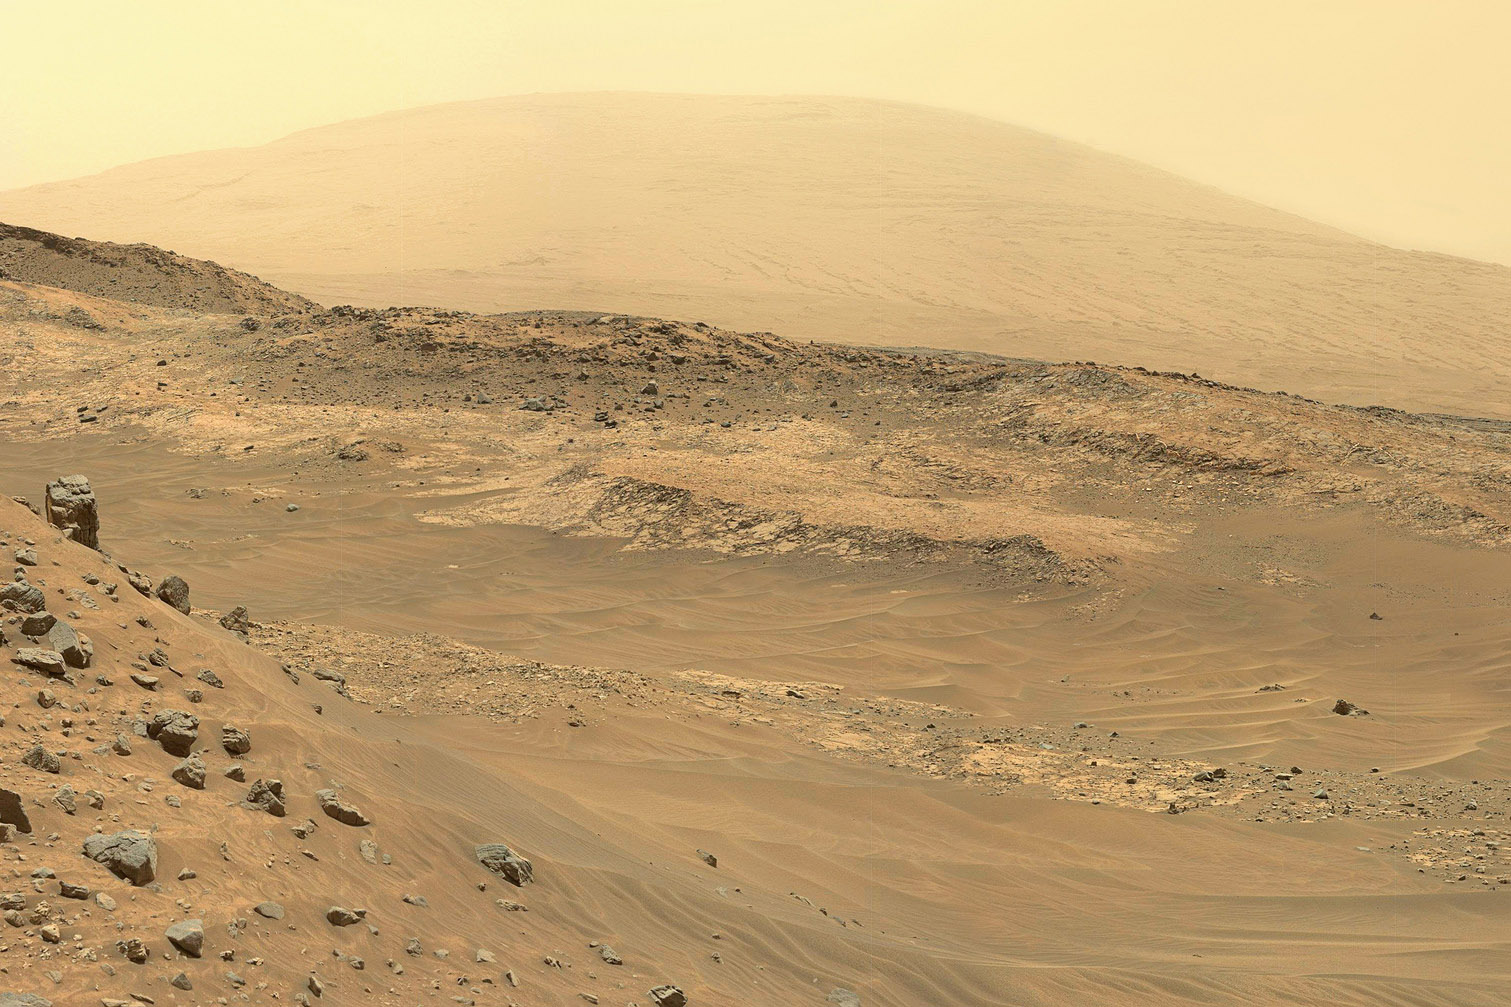 A composite image of the mountains and rocks of Mars